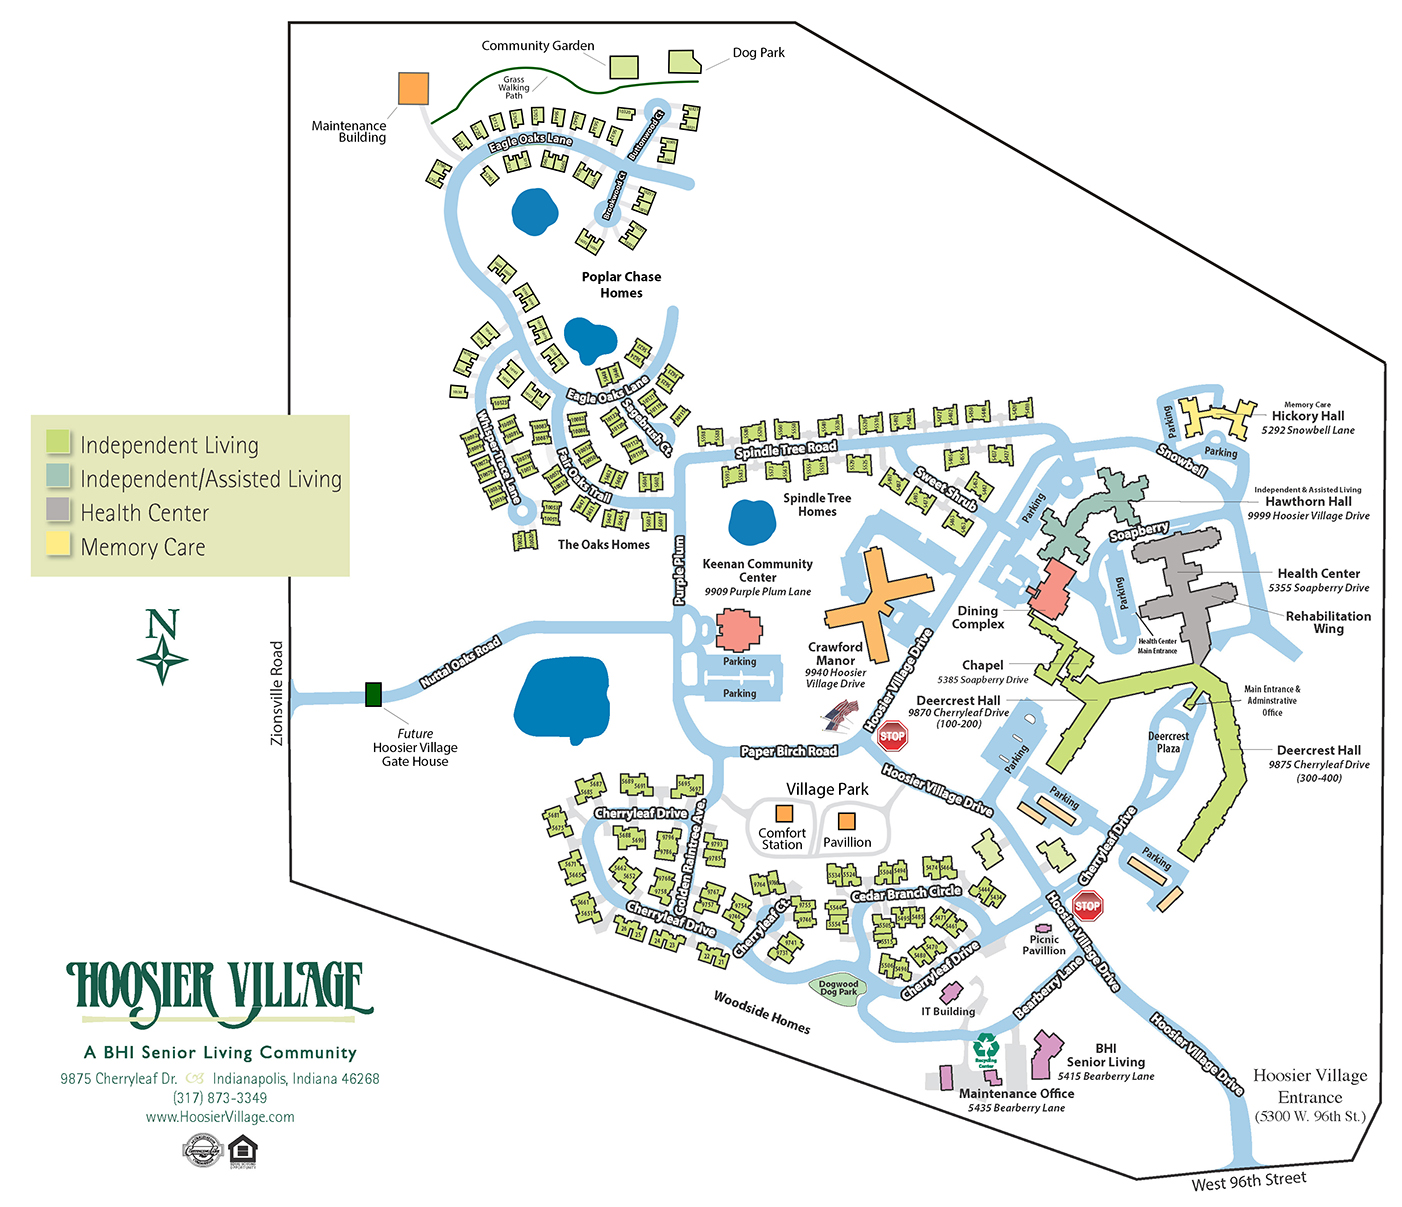 Illustrated map of the Hoosier Village campus